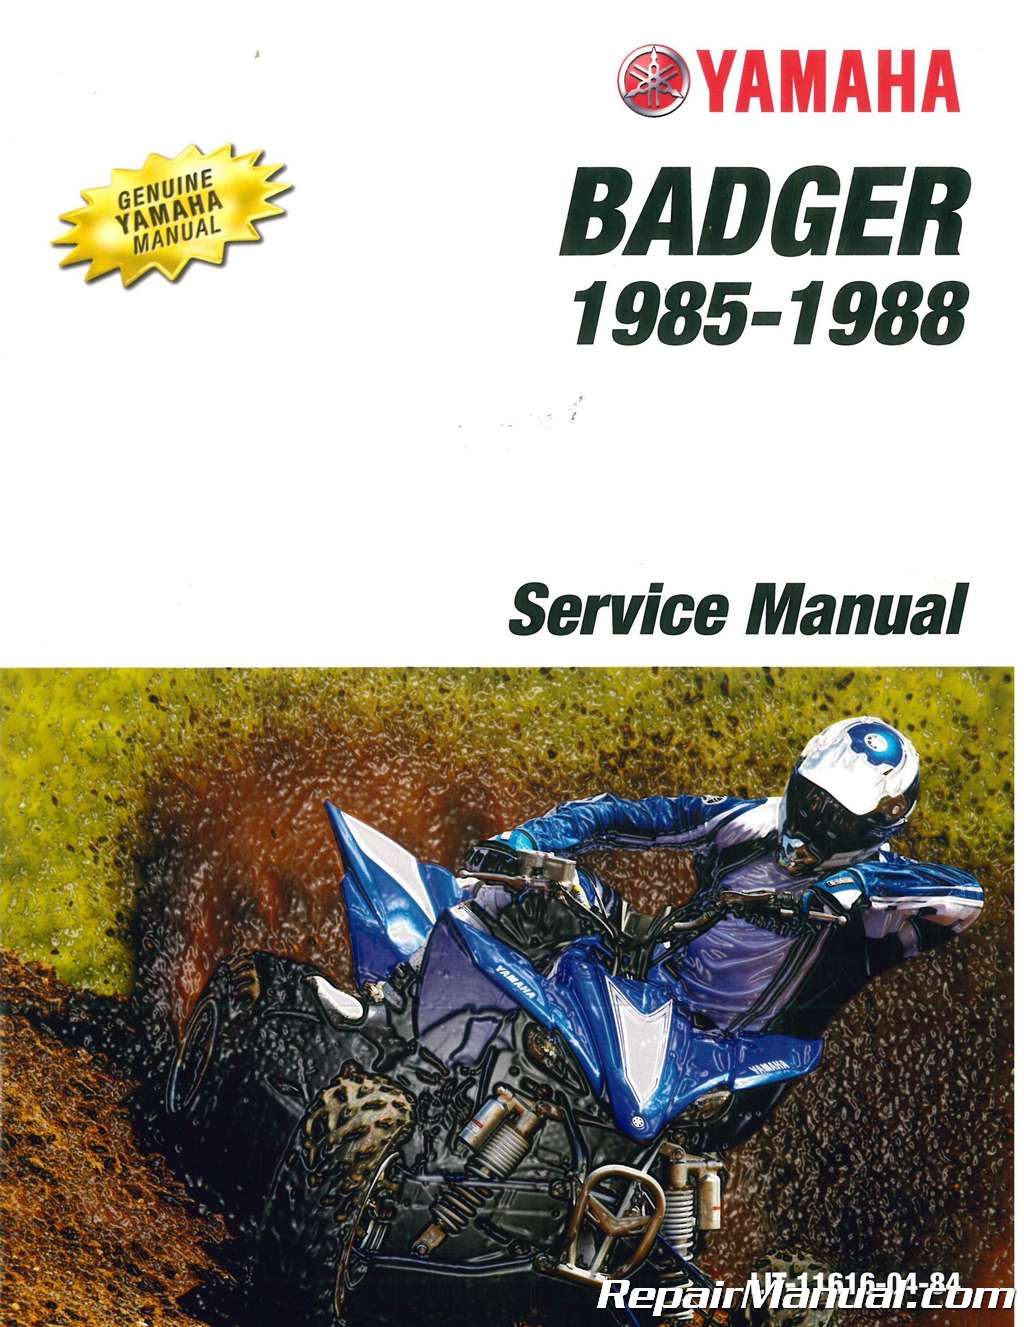 1985 1988 Yamaha Yfm80 Service Manual